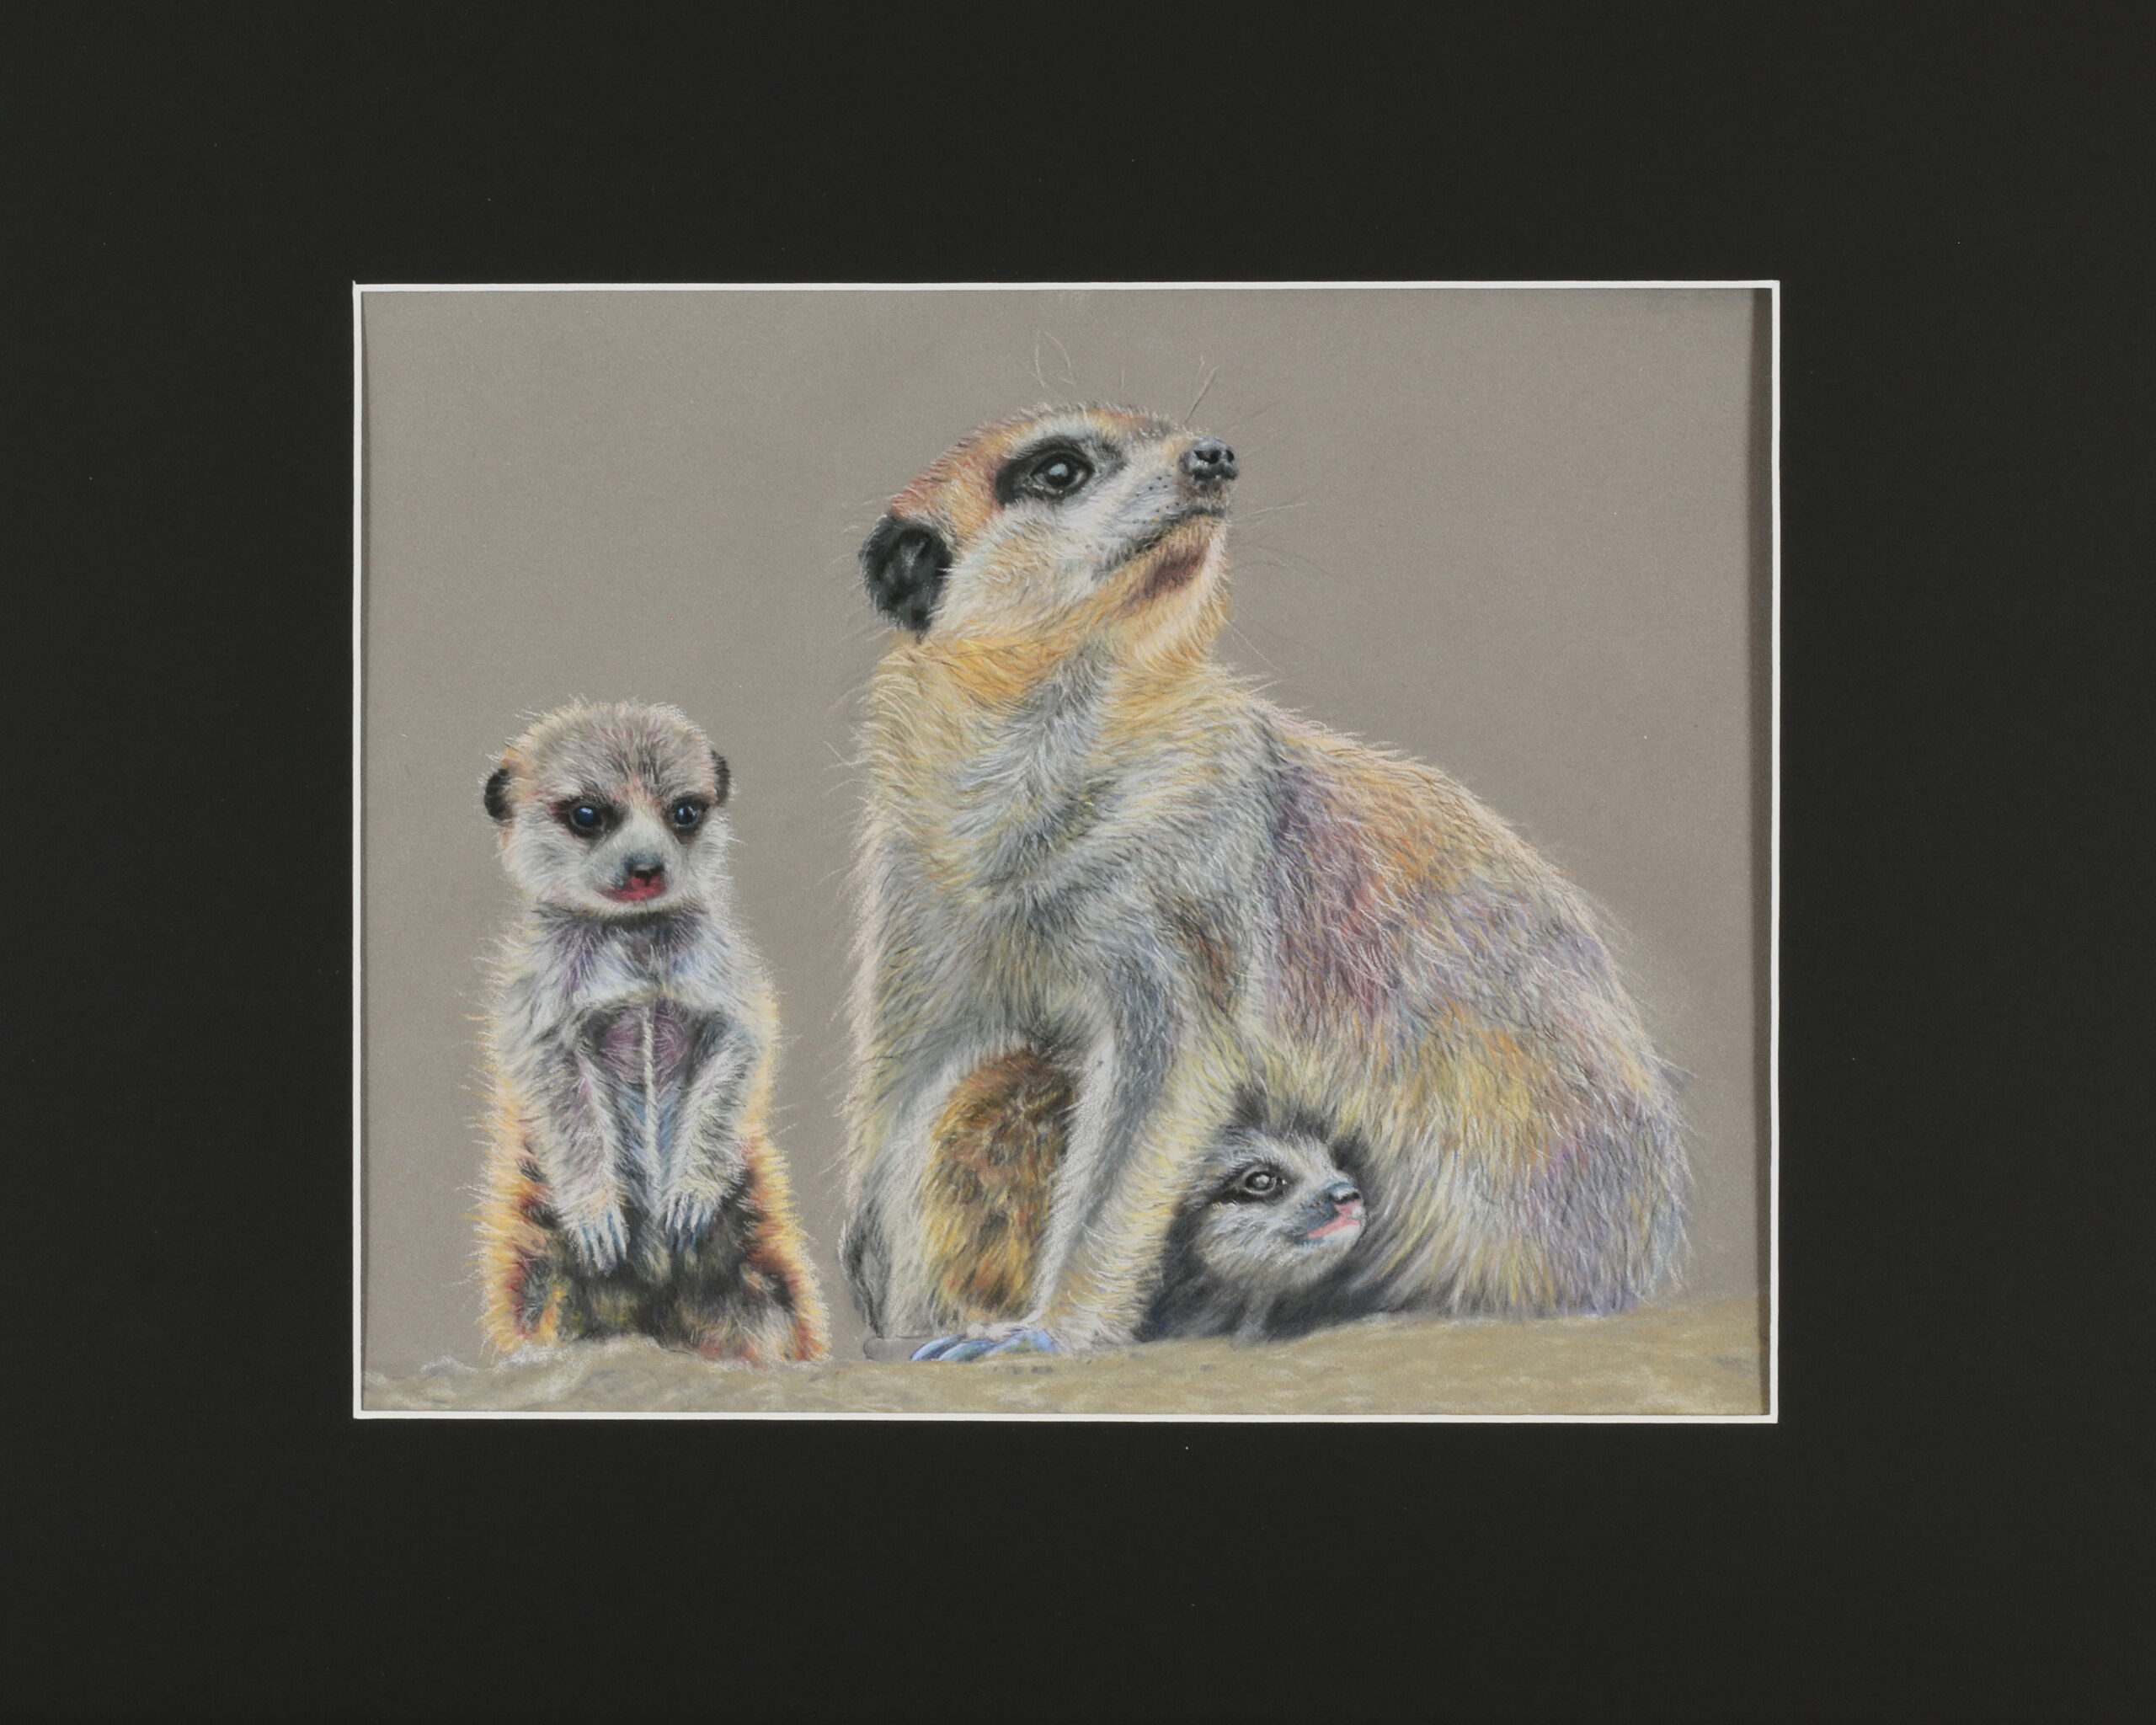 Meerkats 24x32 Pastels - Photo reference by Bianca Schmidt/Off Leash Photography